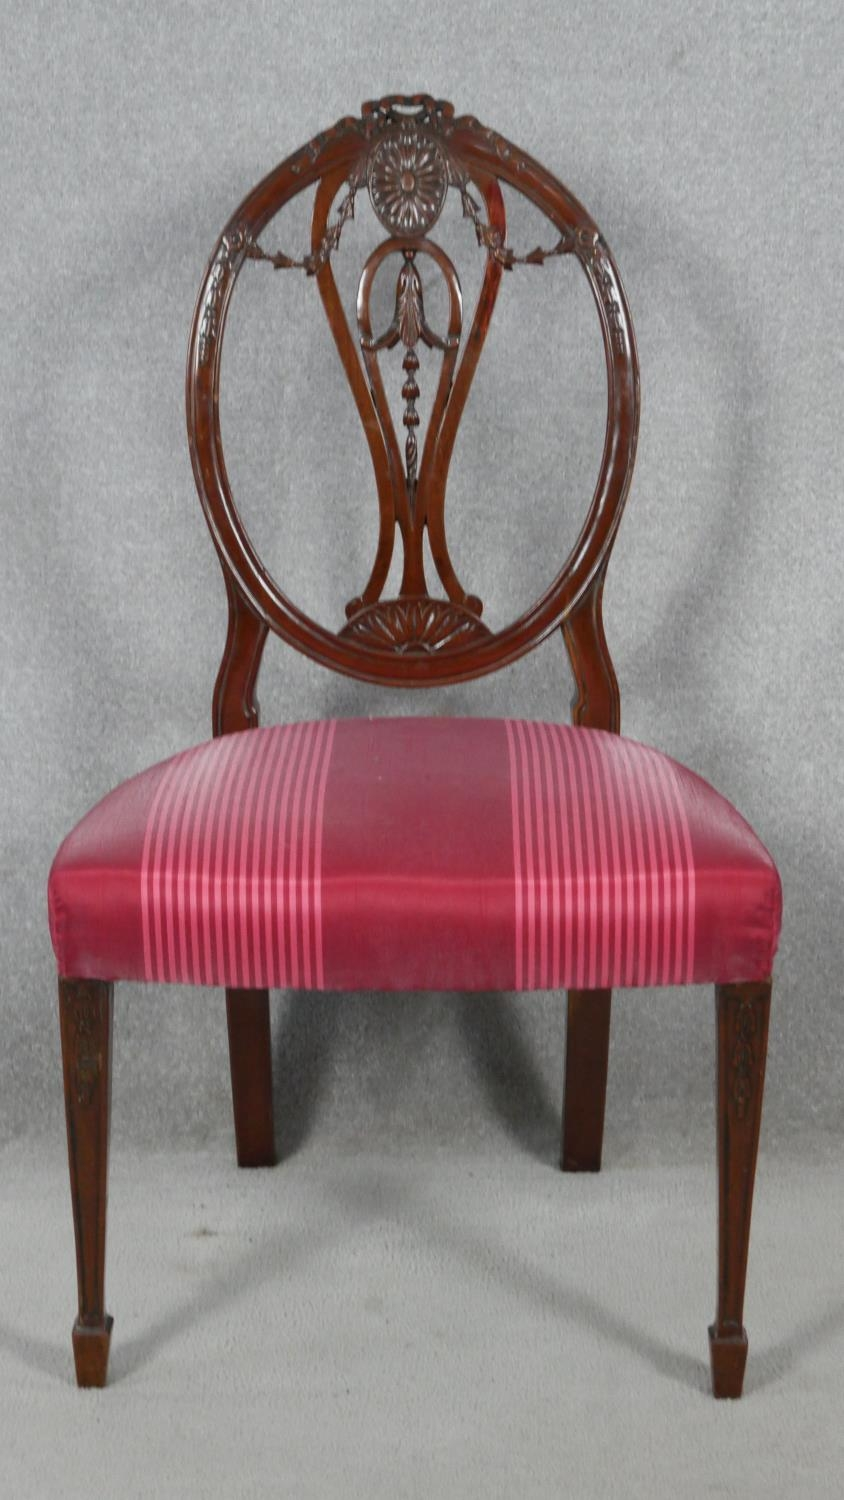 A 19th century mahogany dining chair with carved swag and ribbon detail to the back raised on square